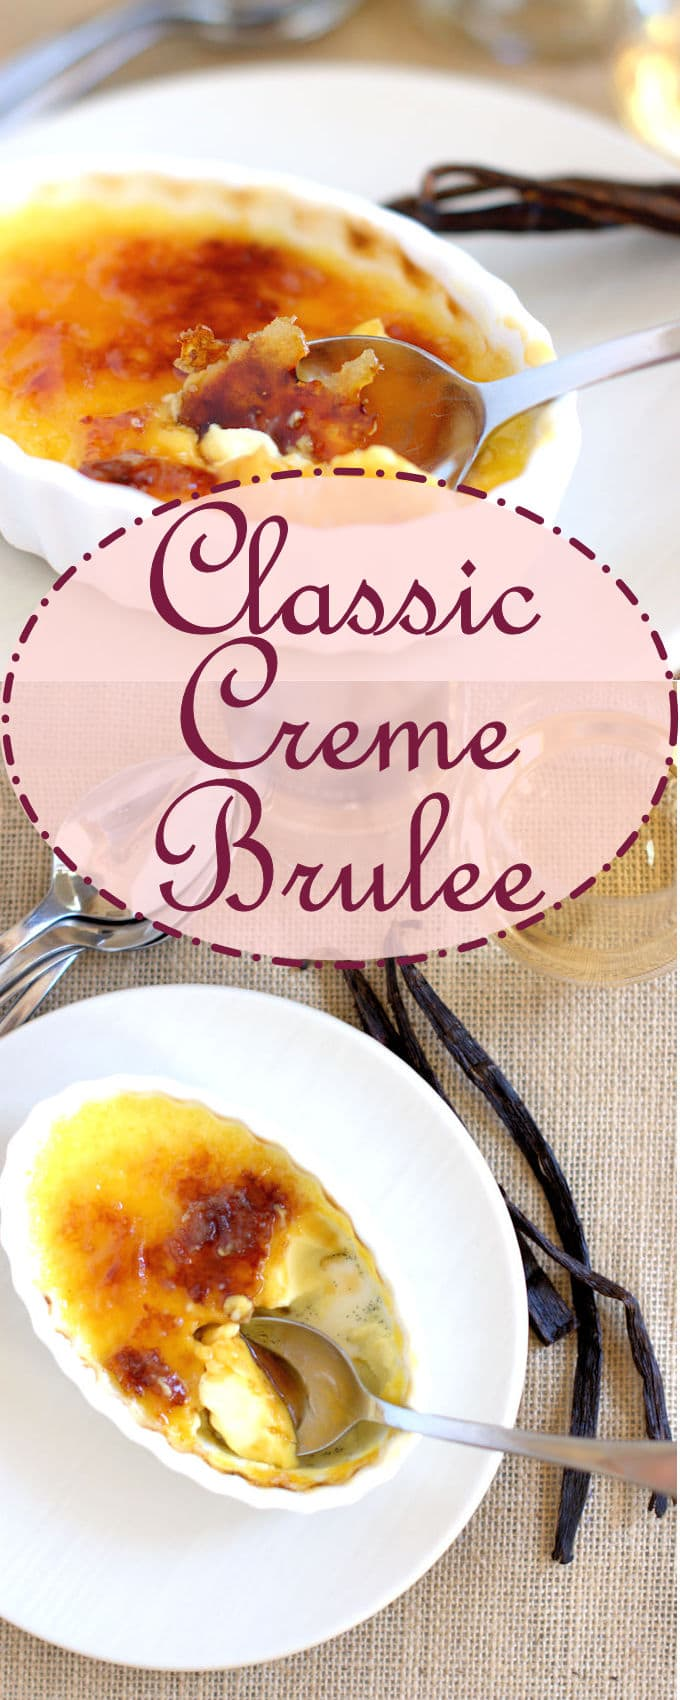 Perfect creamy custard topped with crackly caramelized sugar.